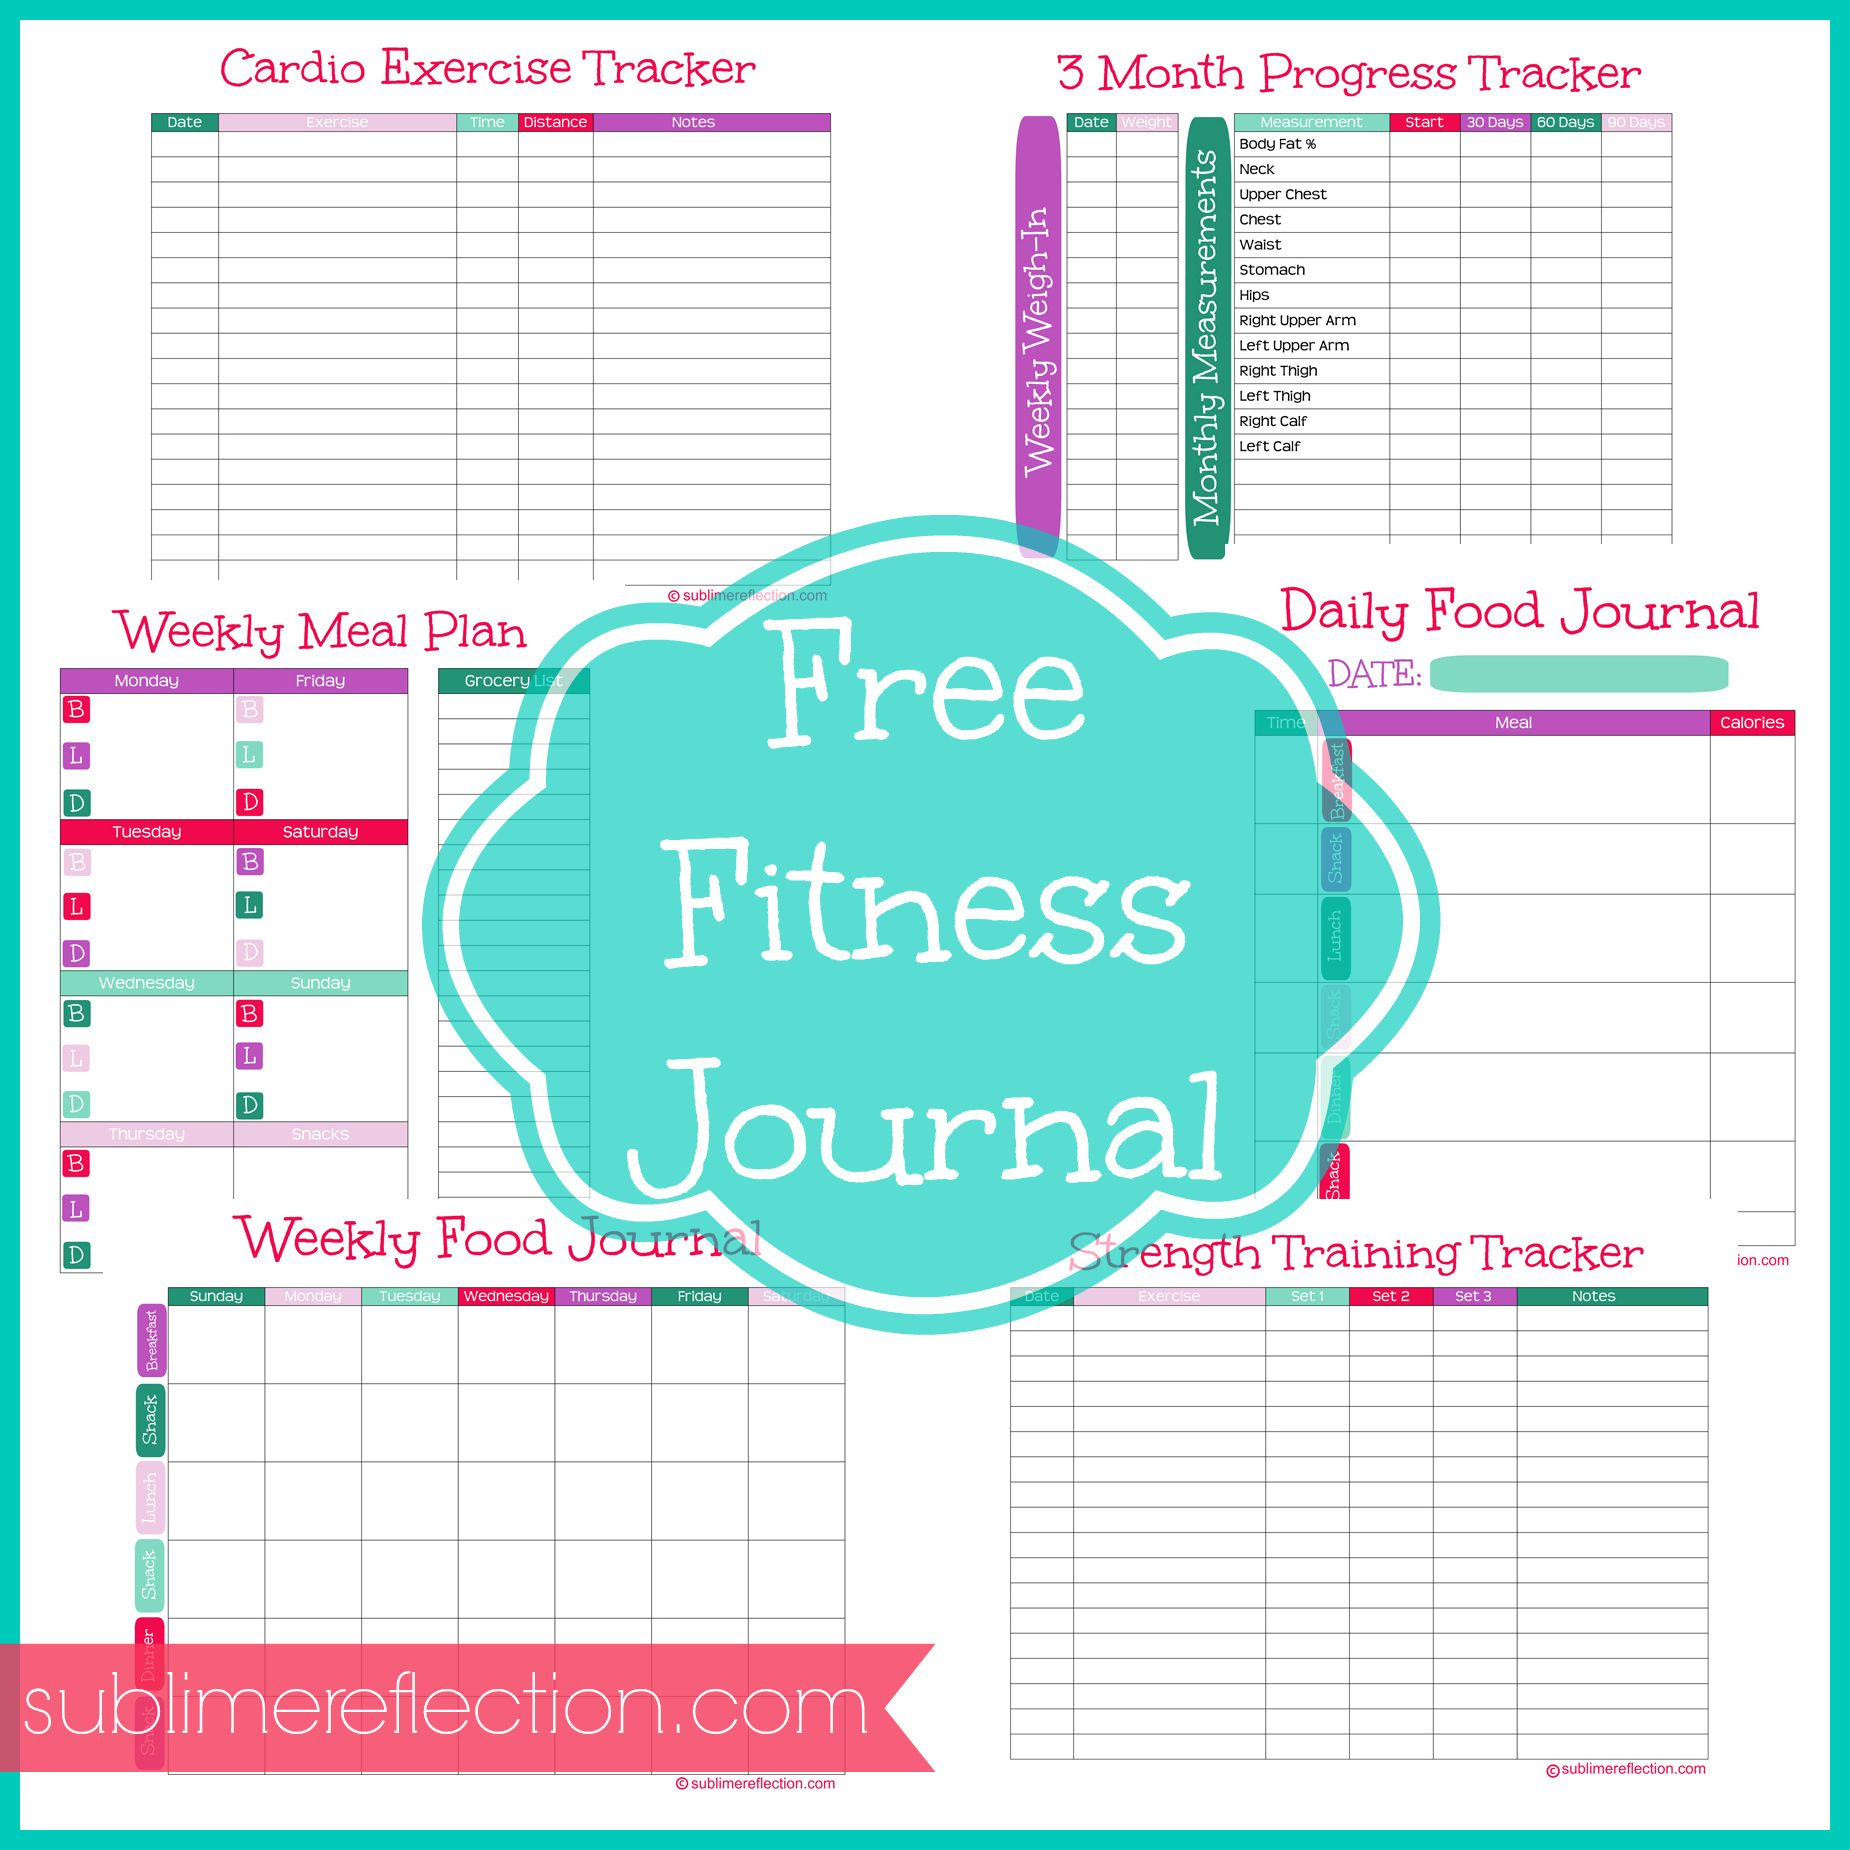 free downloadable fitness journal sublime reflection pinterest